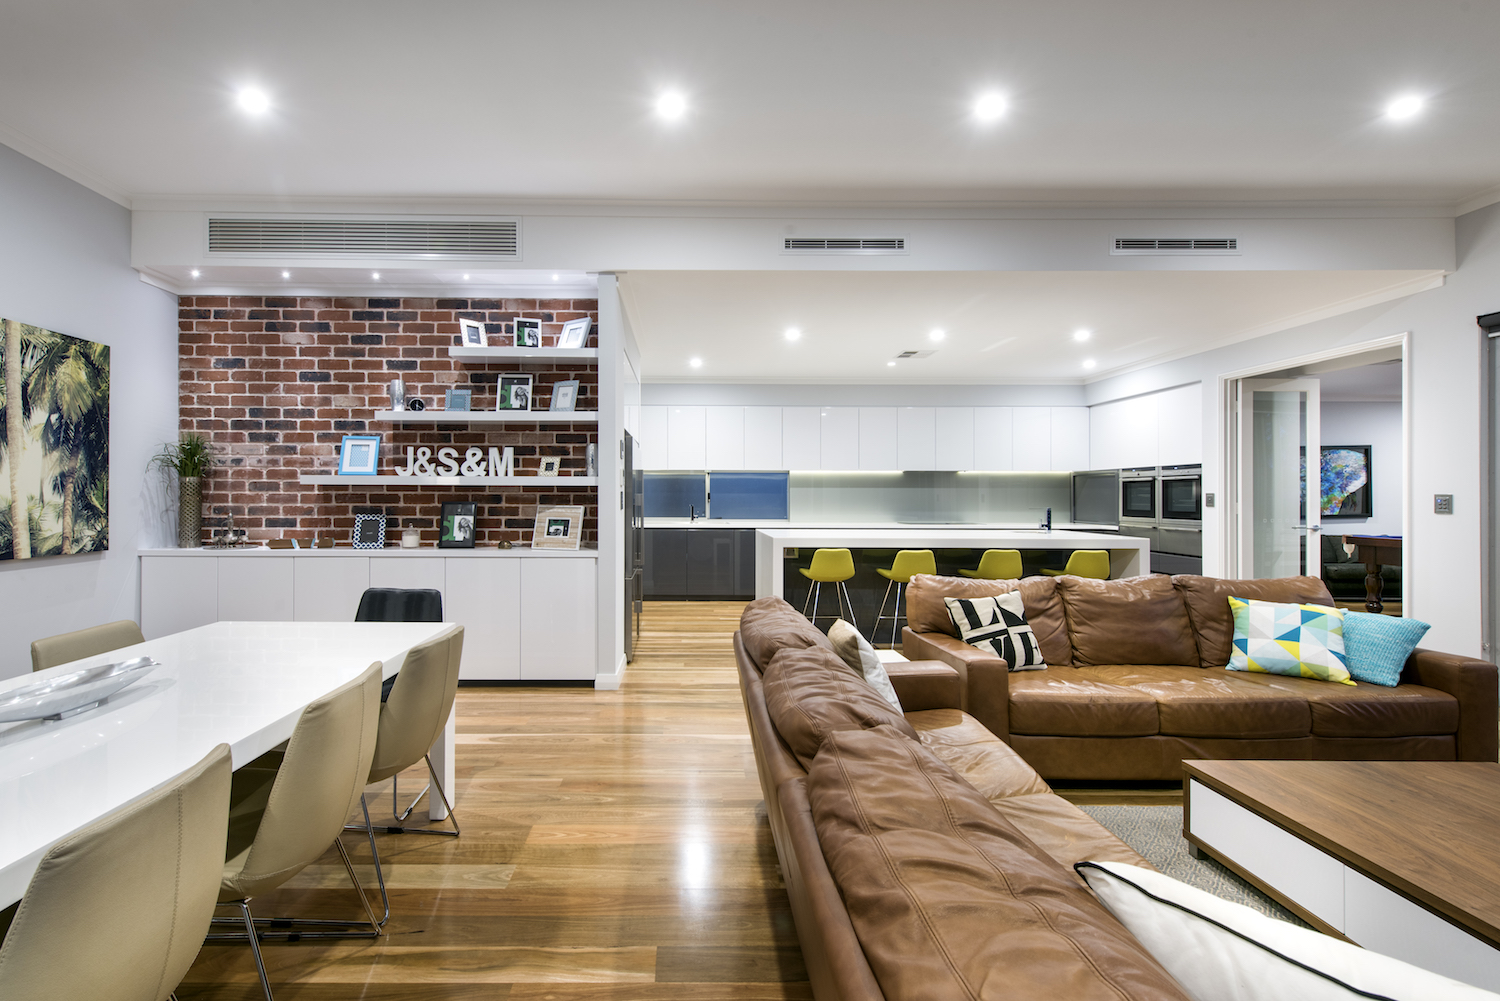 Residential Attitudes - Open plan house with dining table, lounge and kitchen